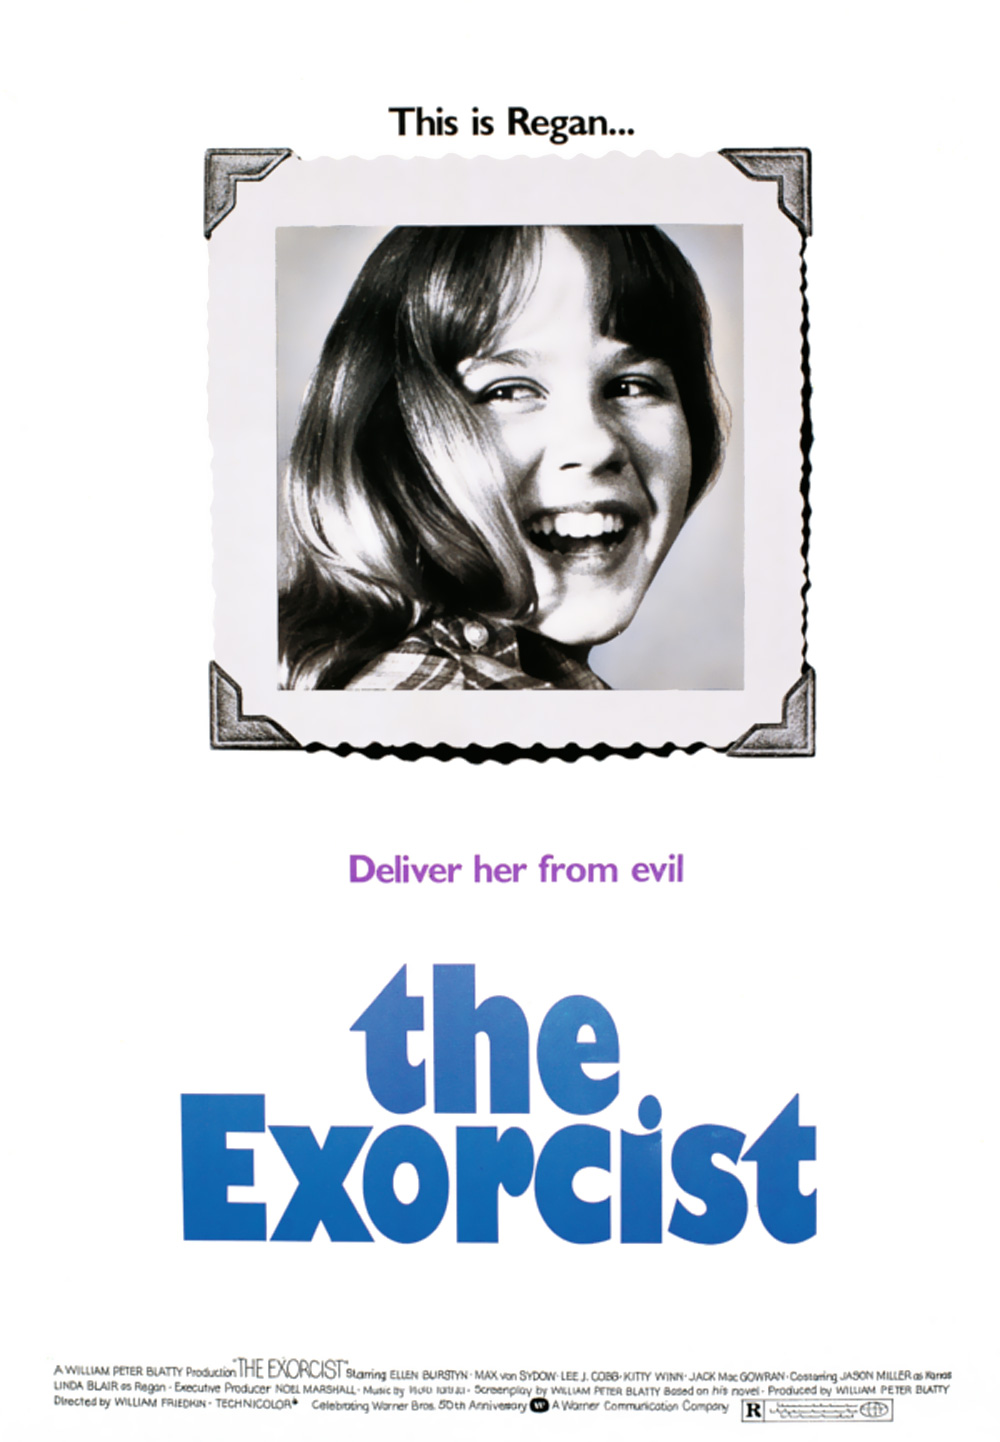 Rejected Exorcist poster design by Bill Gold